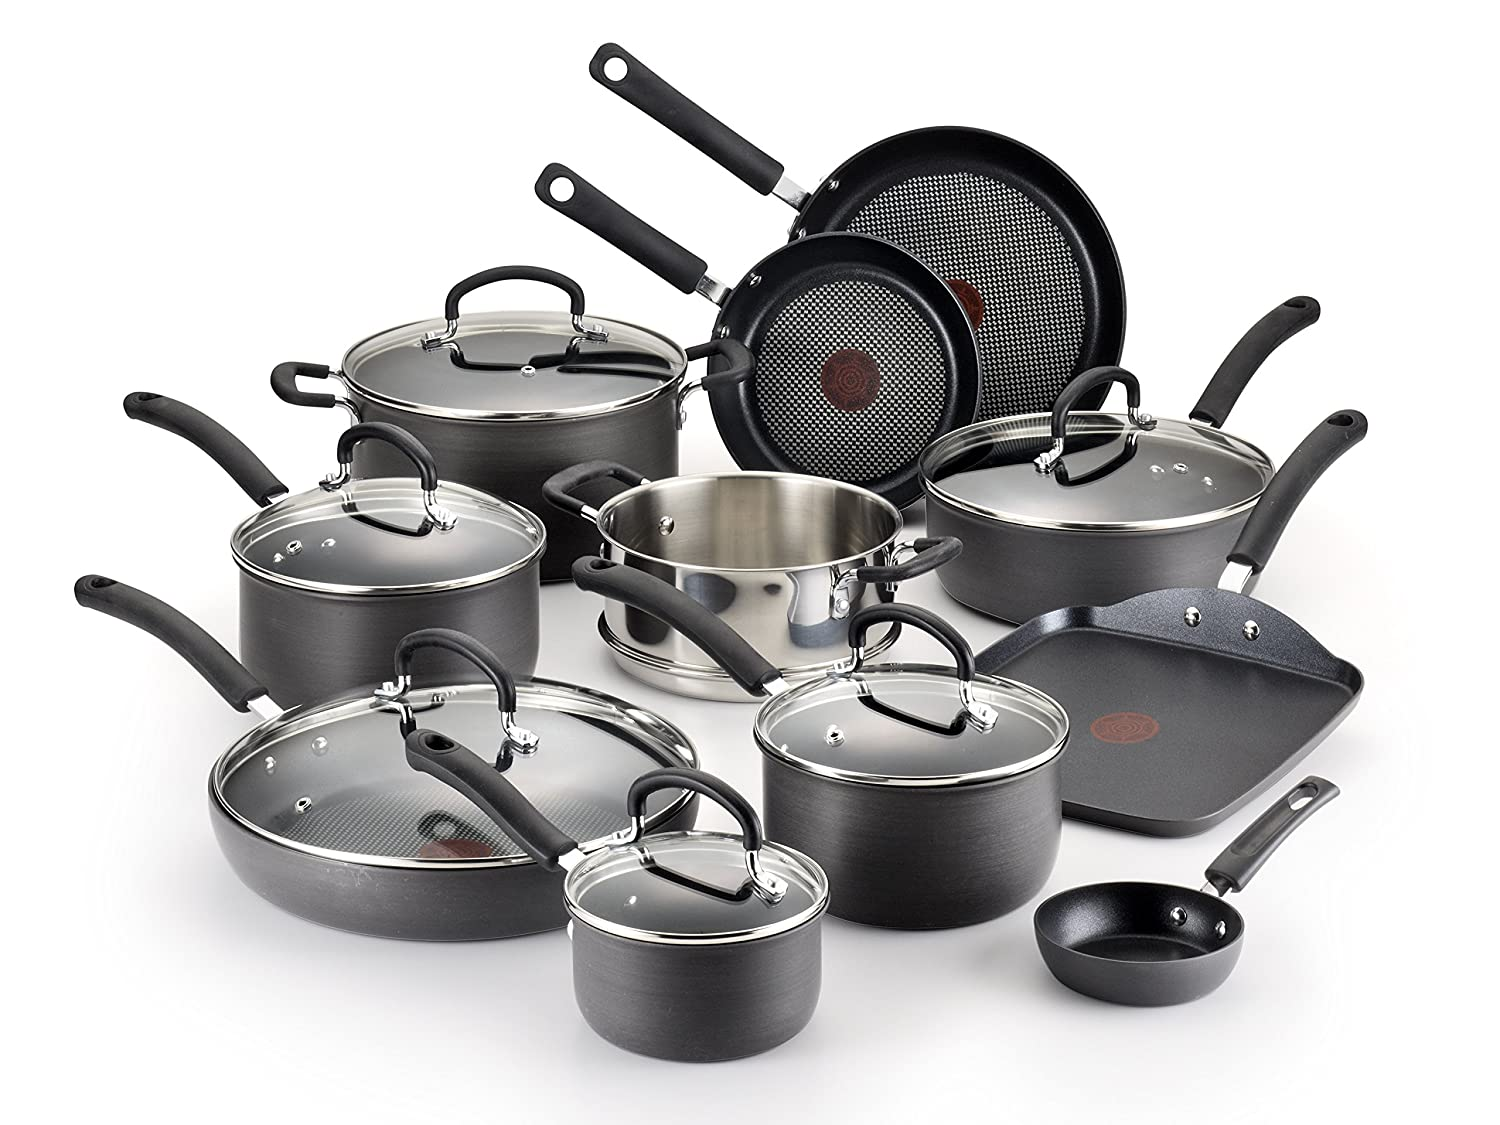 T-fal E765SH Ultimate Hard Anodized Scratch Resistant Titanium Nonstick Cookware Set